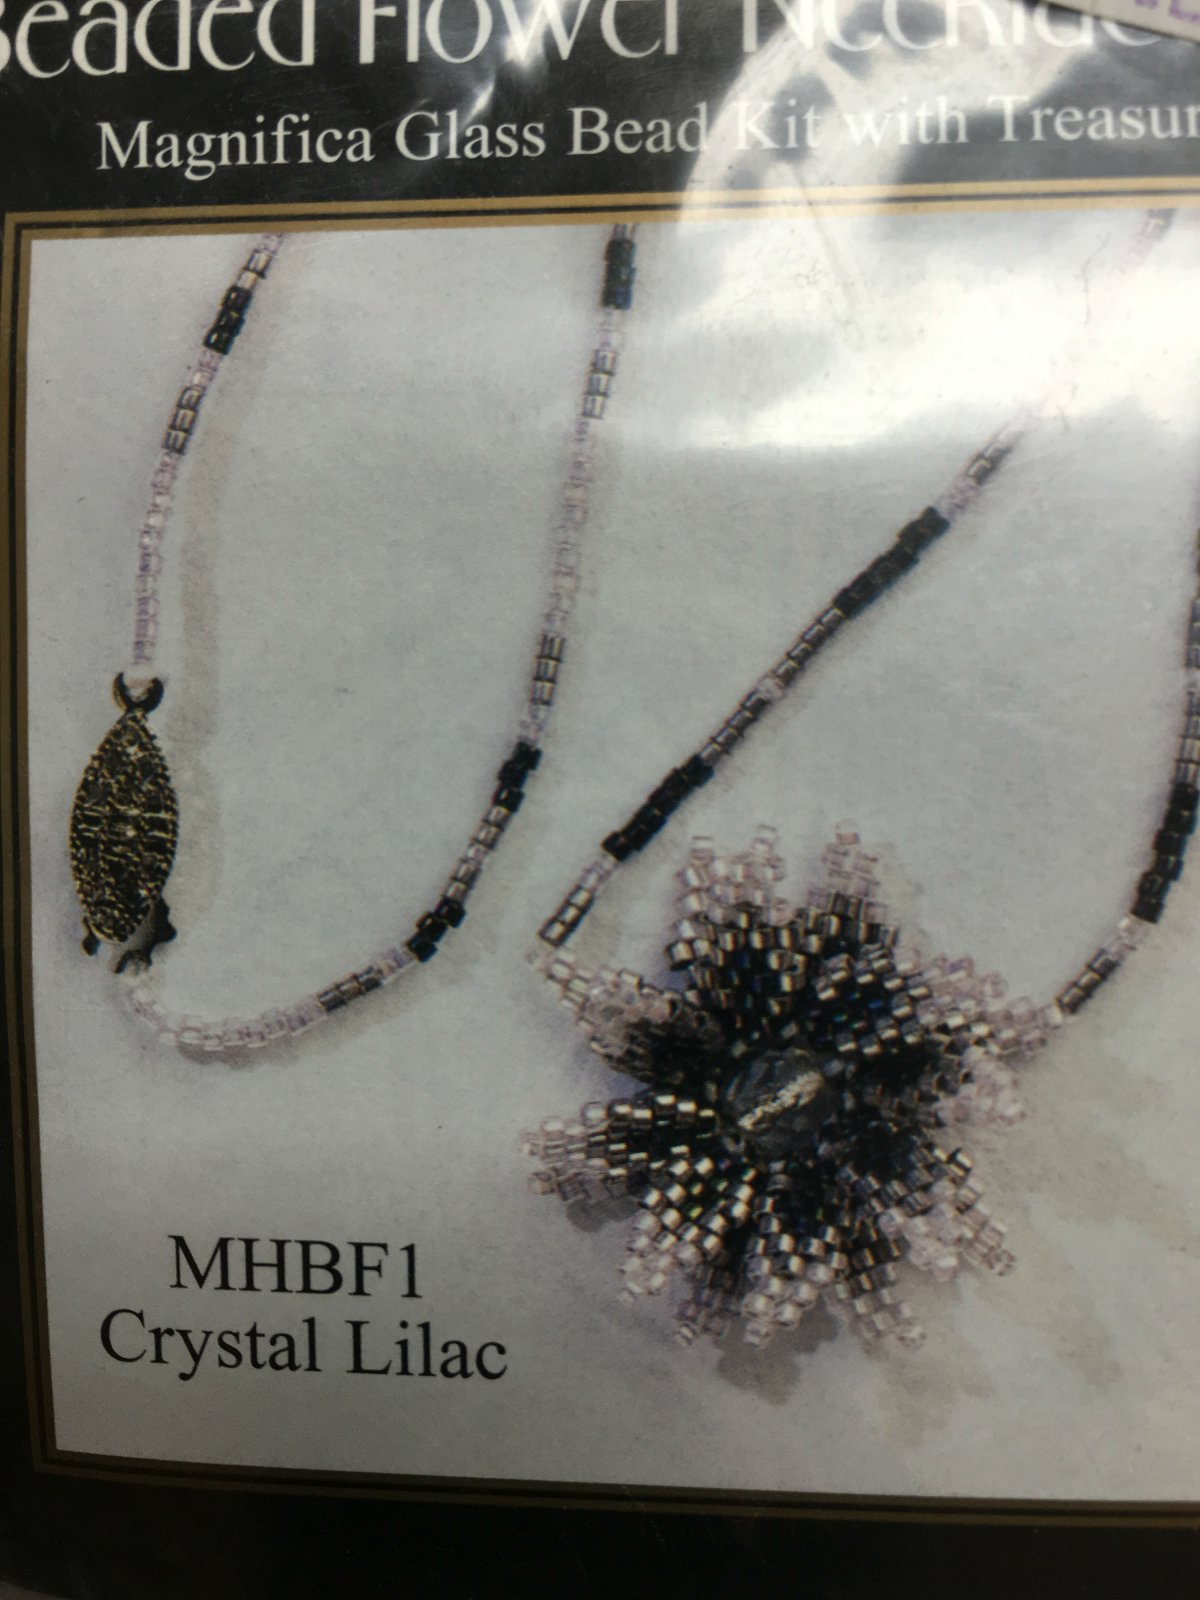 Mill Hill Beaded Flower Necklace Crystal Lilac MHBF1 kit